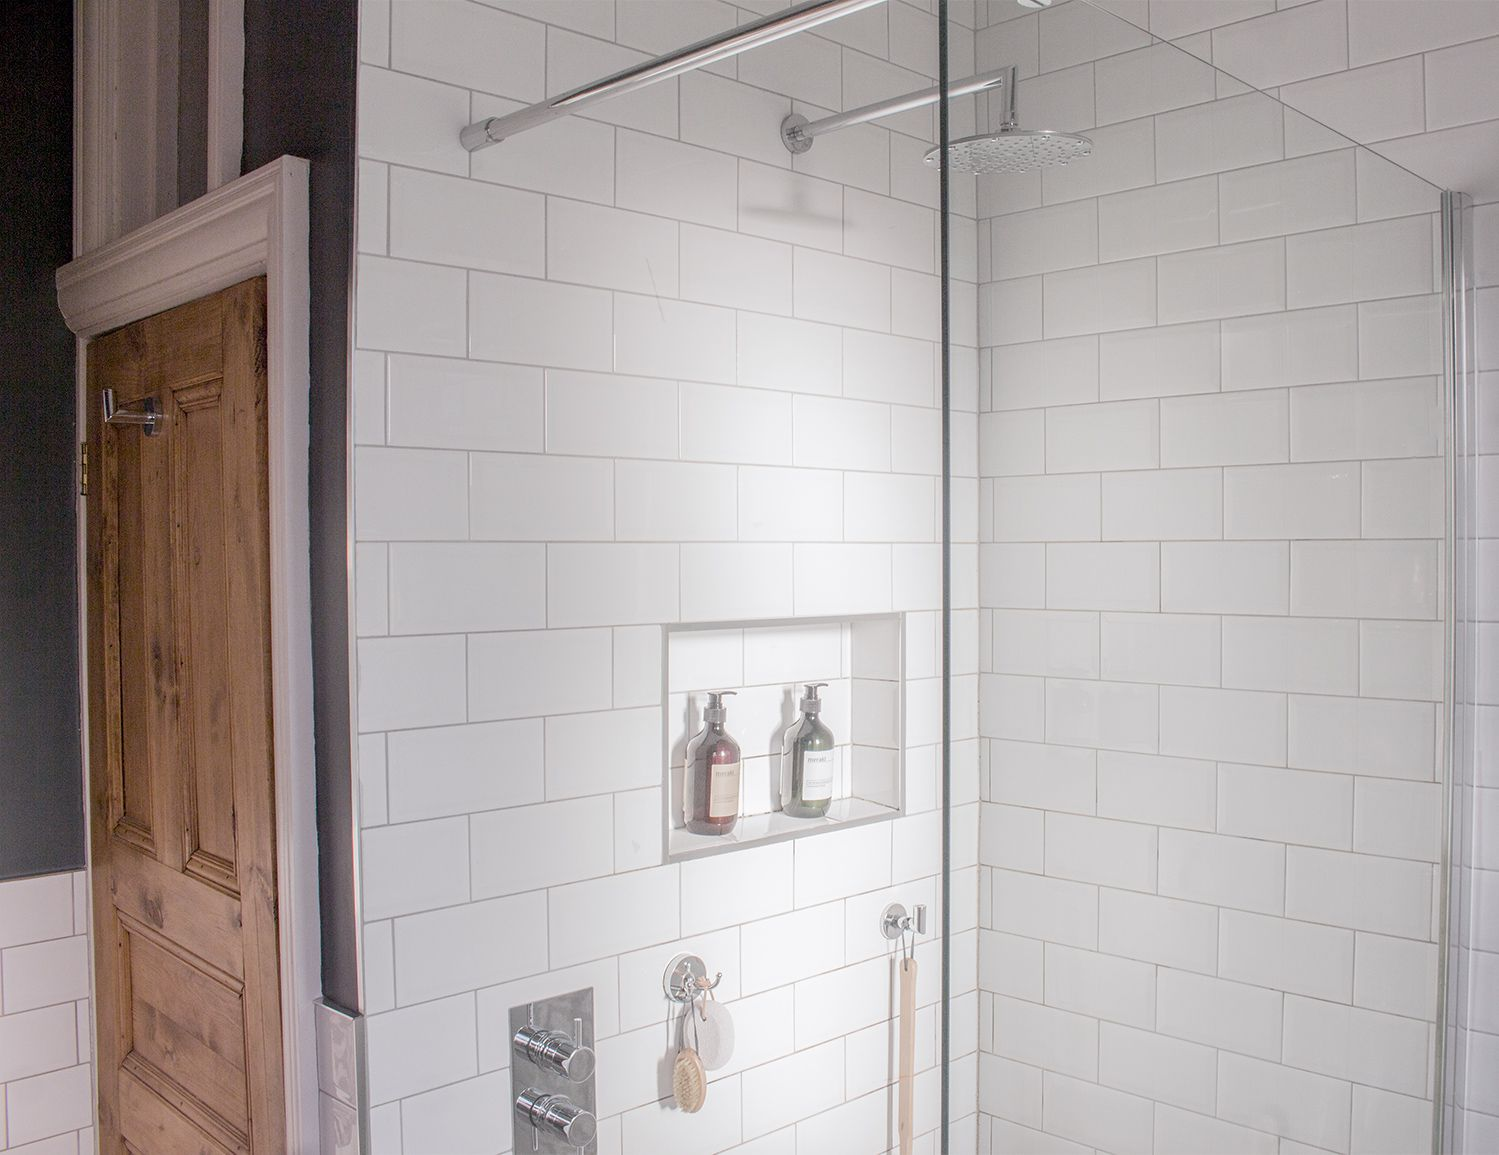 A photo of the new open shower area with one panel screen and a niche for toiletries.